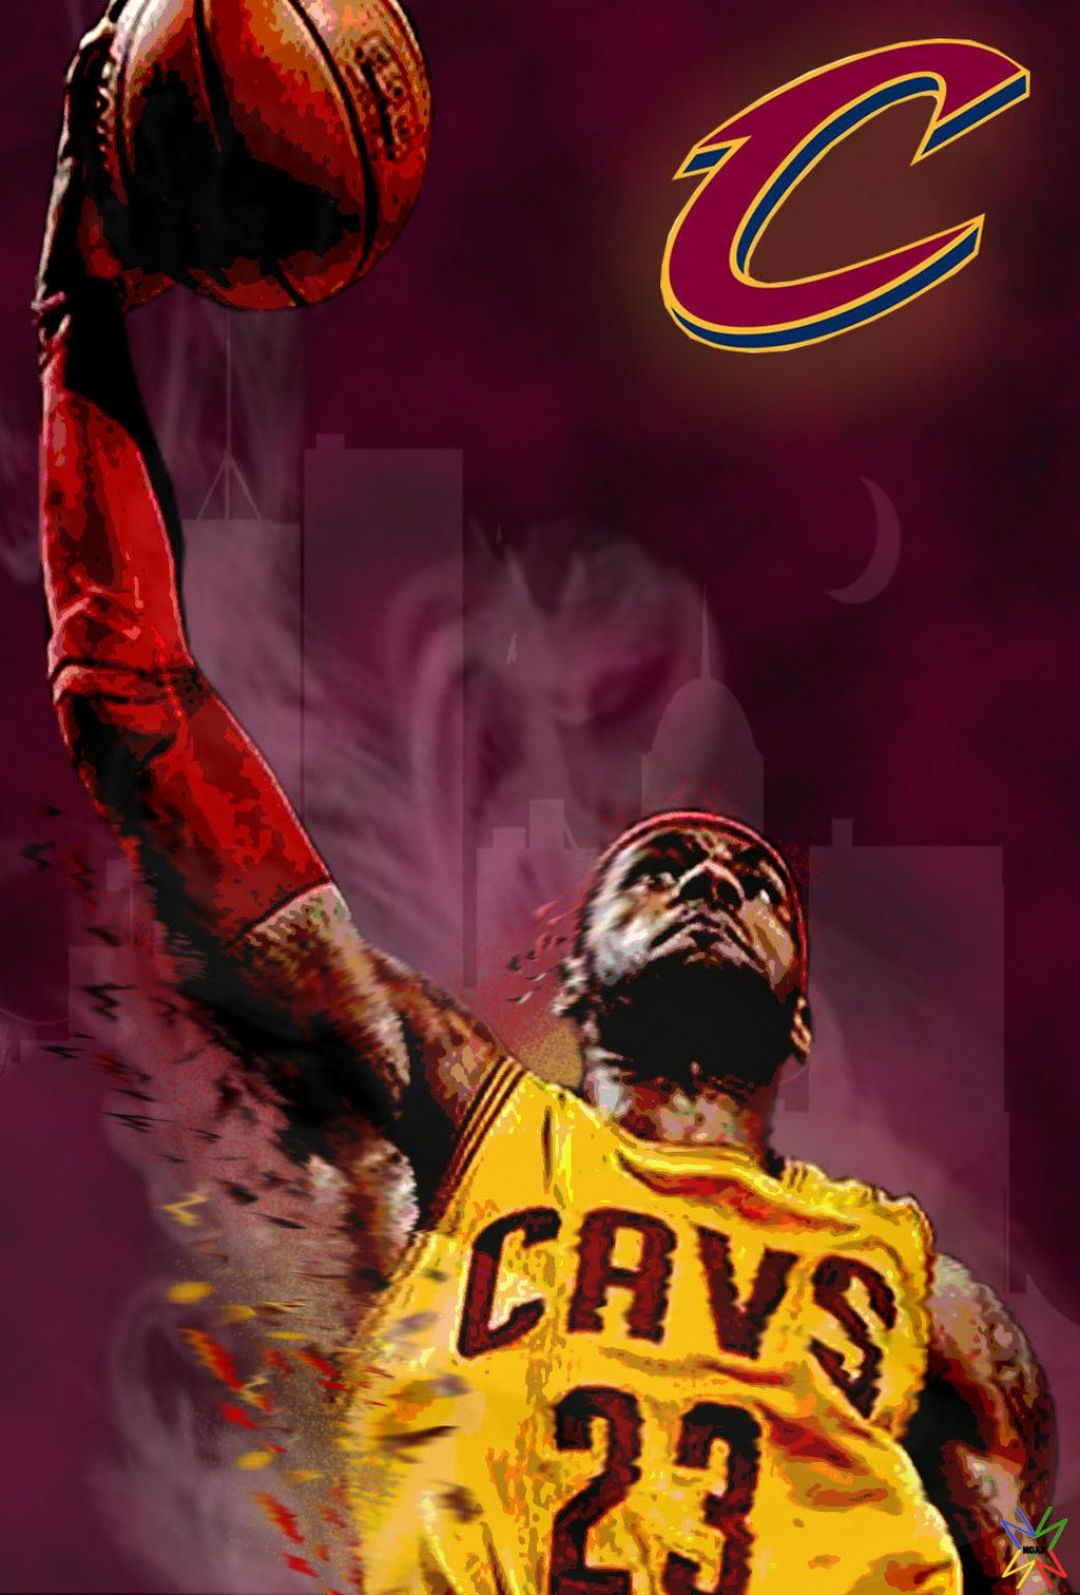 50 Lebron James Android Iphone Desktop Hd Backgrounds Wallpapers 1080p 4k 1080x1595 2021